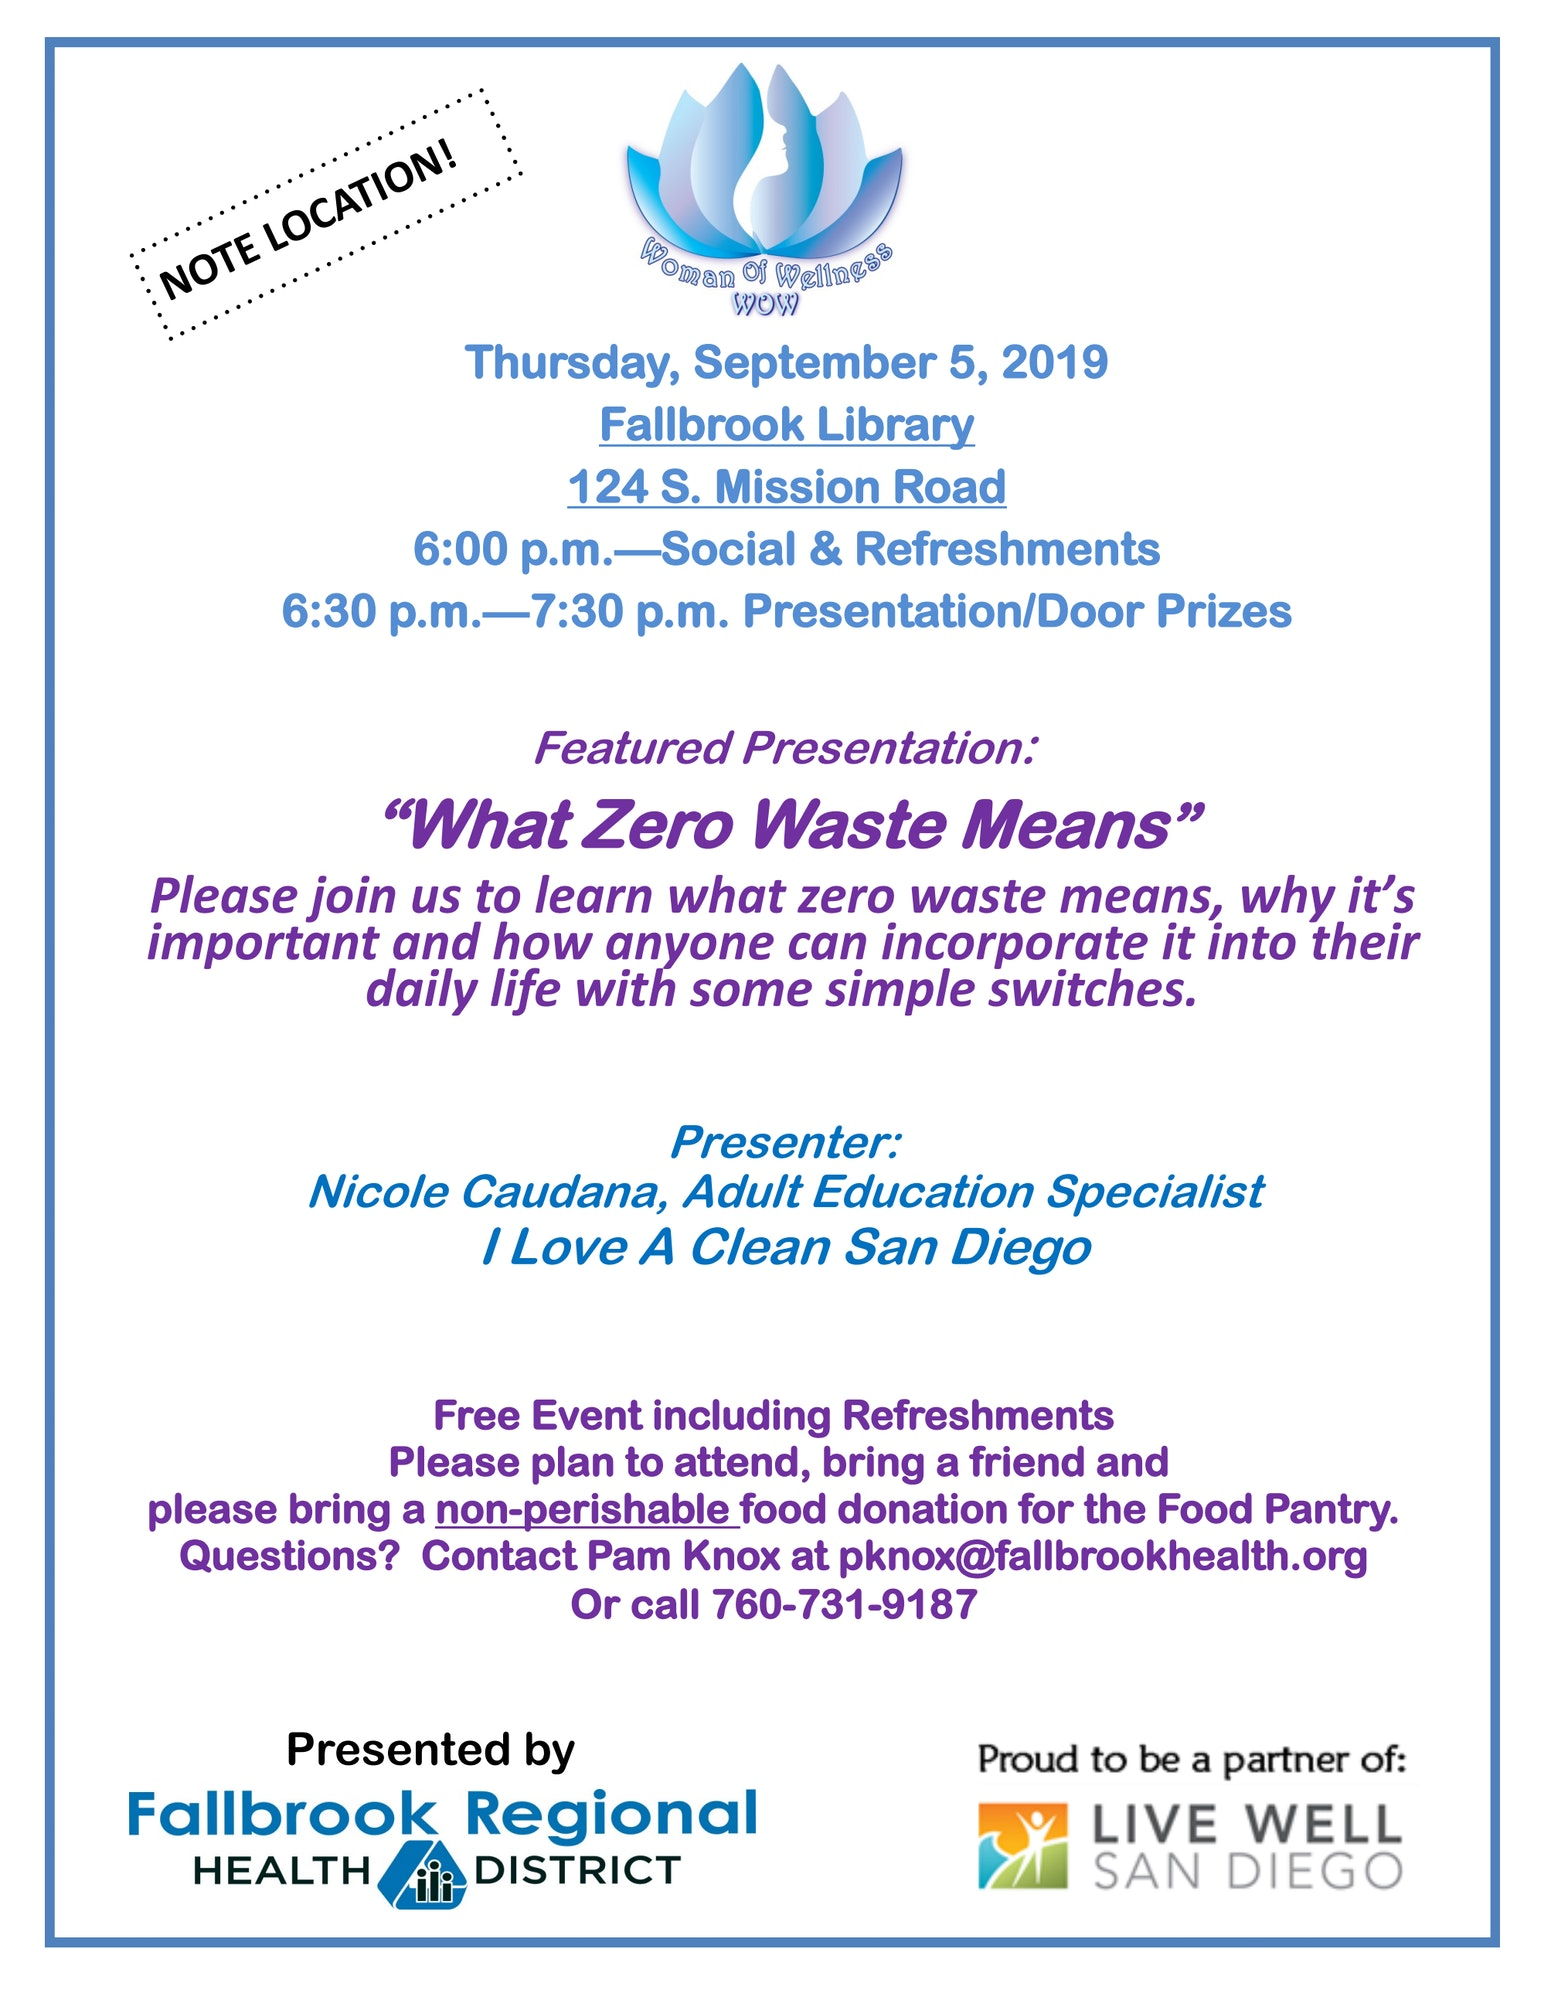 What Zero Waste Means at the Fallbrook Library, 124 S. Mission Rd. at 6:00pm